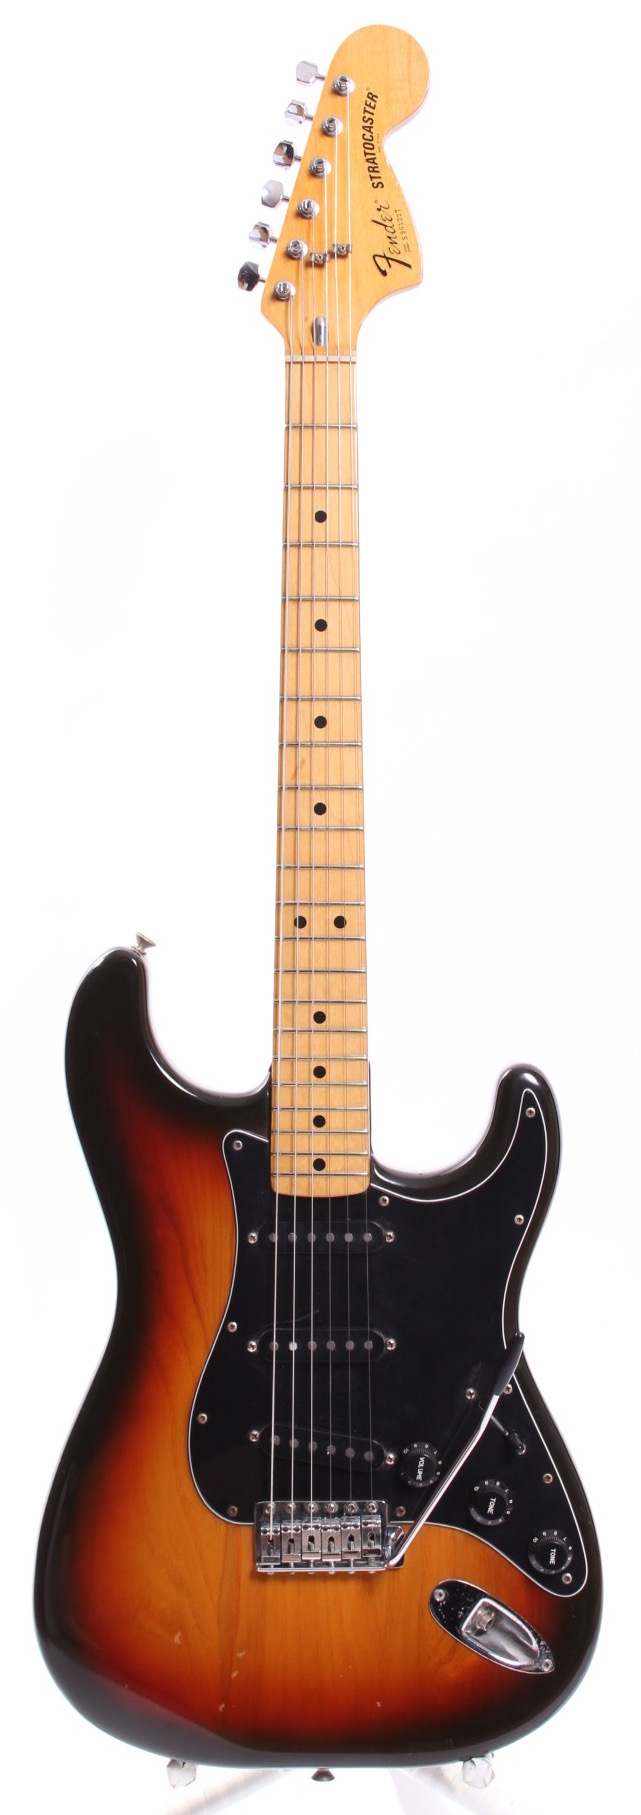 fender stratocaster 1980 sunburst guitar for sale yeahman 39 s guitars. Black Bedroom Furniture Sets. Home Design Ideas